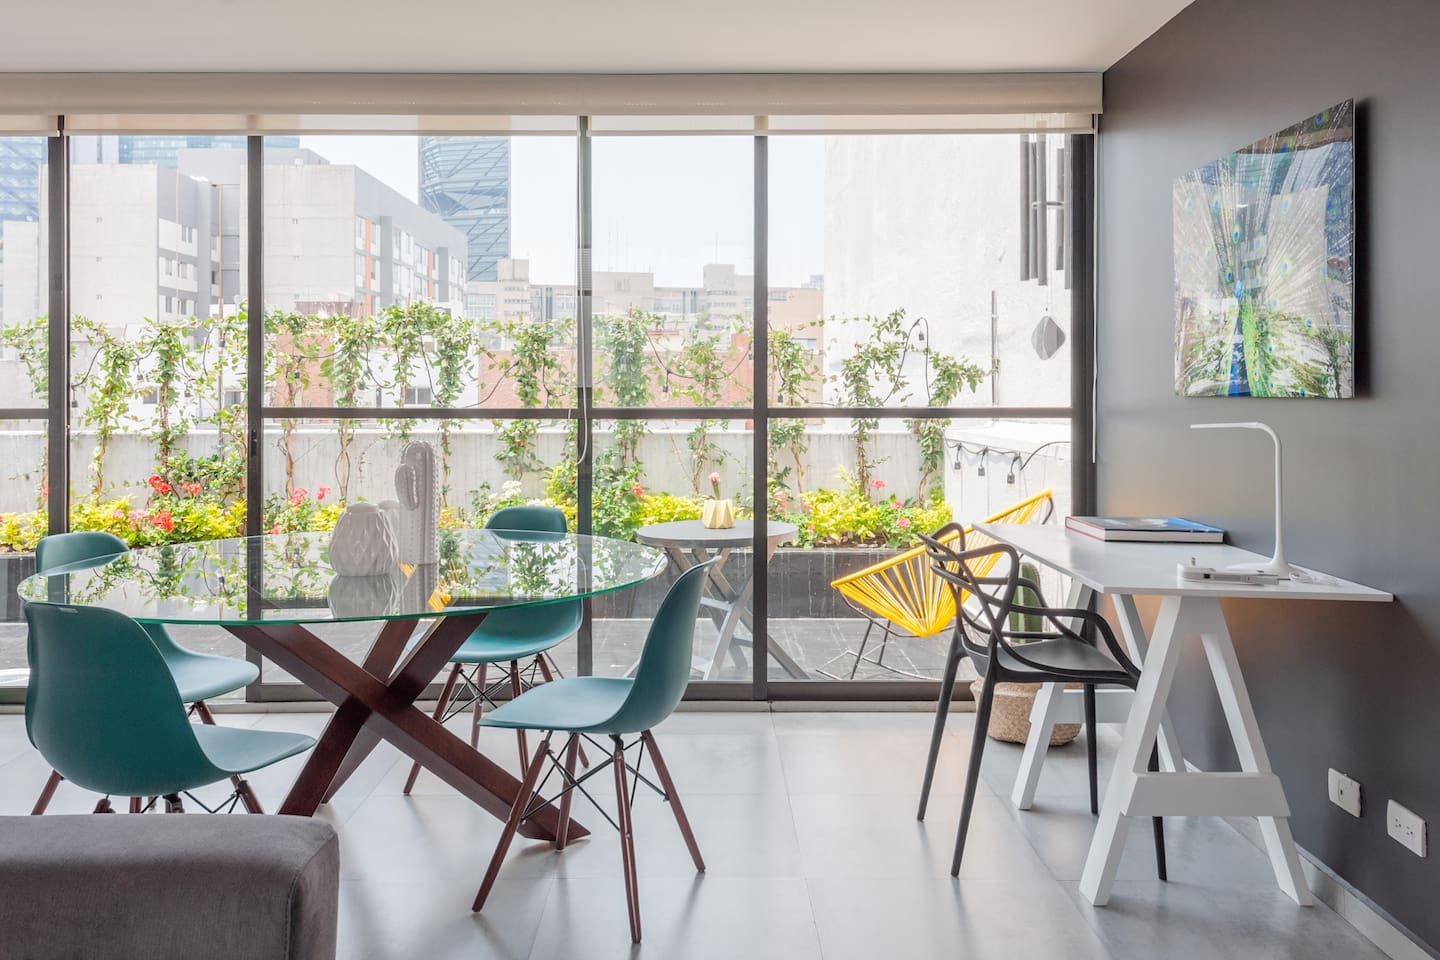 This unique apartment has a nice view on Mexico City's skyline.